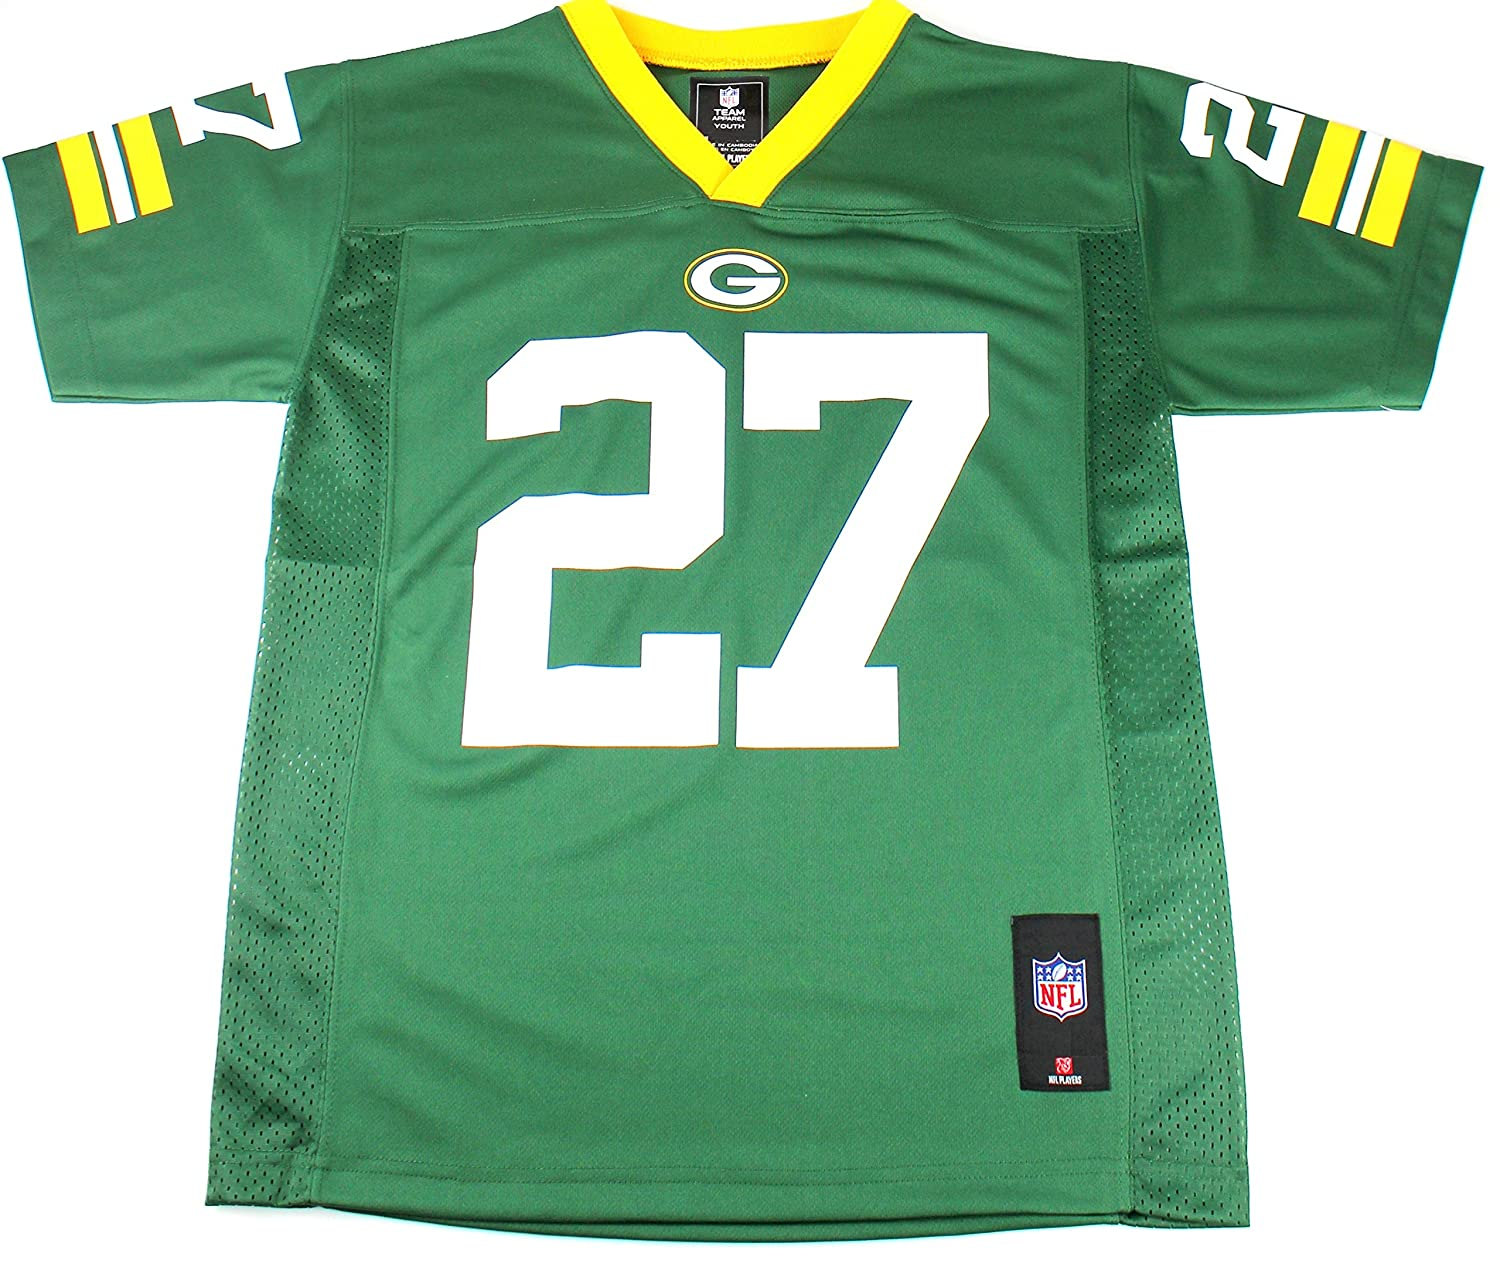 NFL Jersey's Youth Green Bay Packers Eddie Lacy Nike White Game Jersey